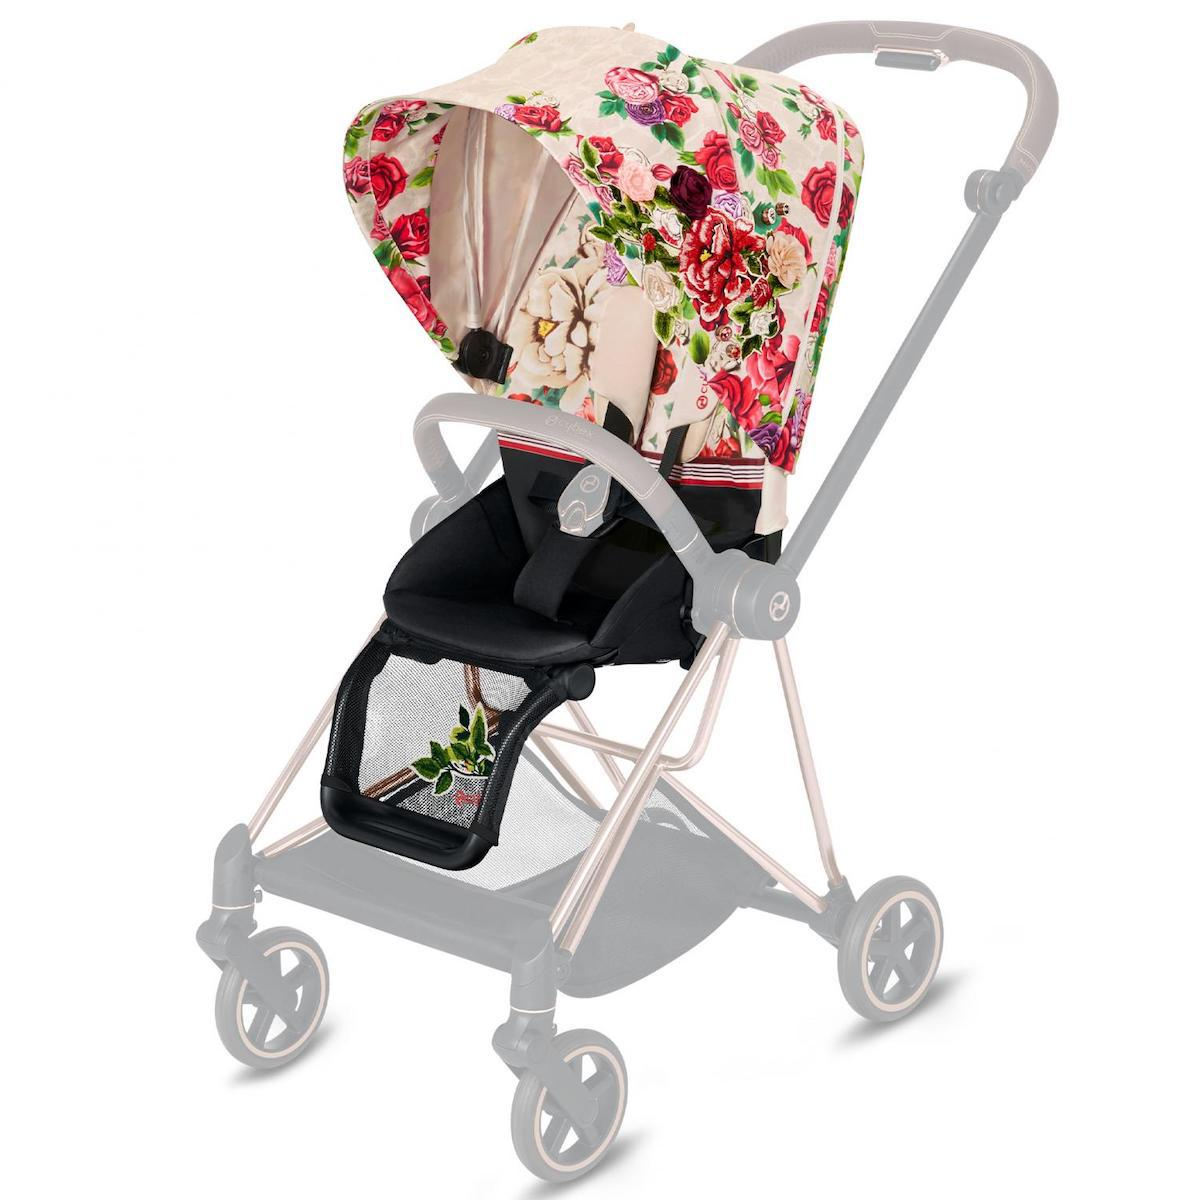 Assise-habillage poussette MIOS Cybex Spring Blossom Light-light beige